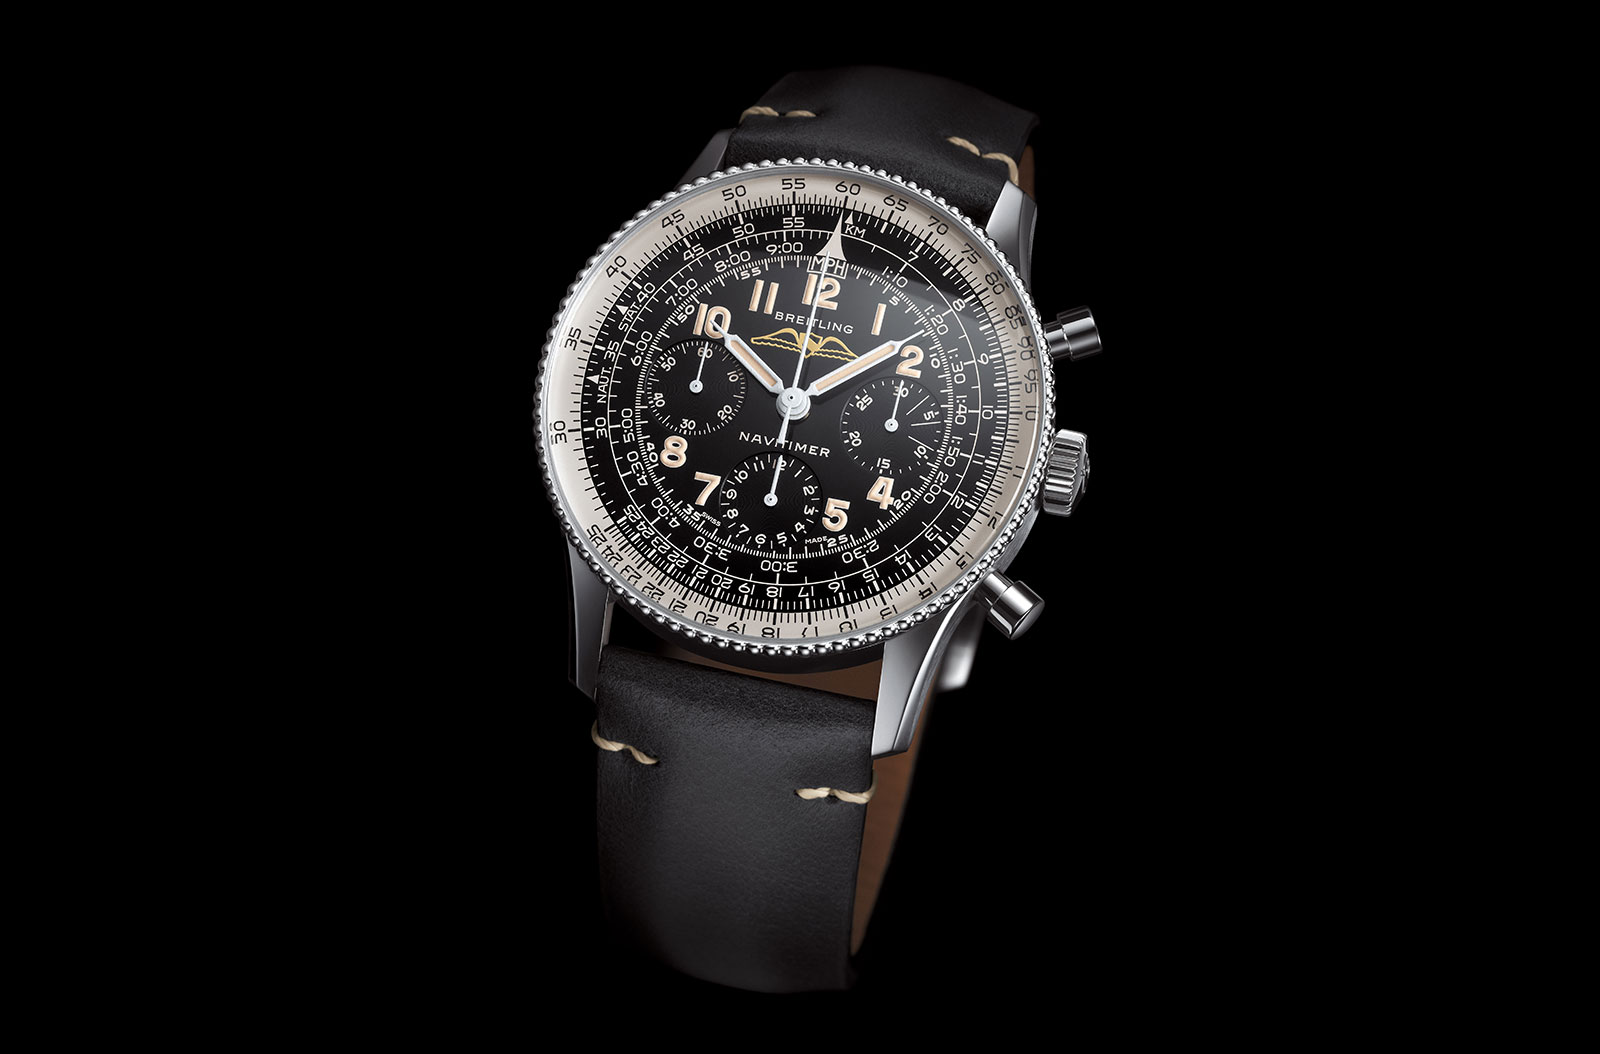 Breitling Navitimer Ref. 806 1959 Re-Edition 2